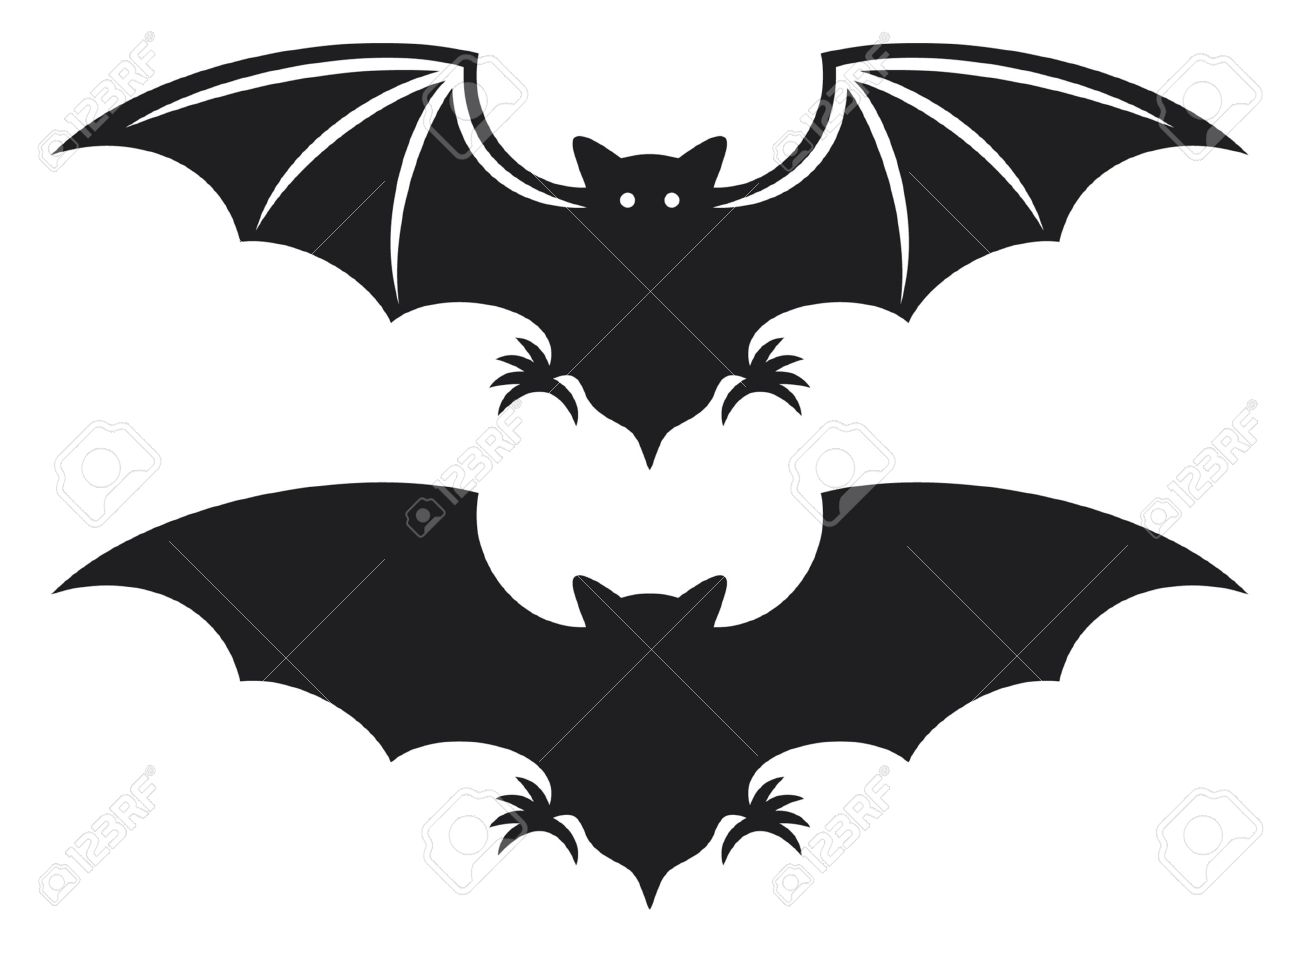 Cave clipart dark cave. Bat collection cliparts stock